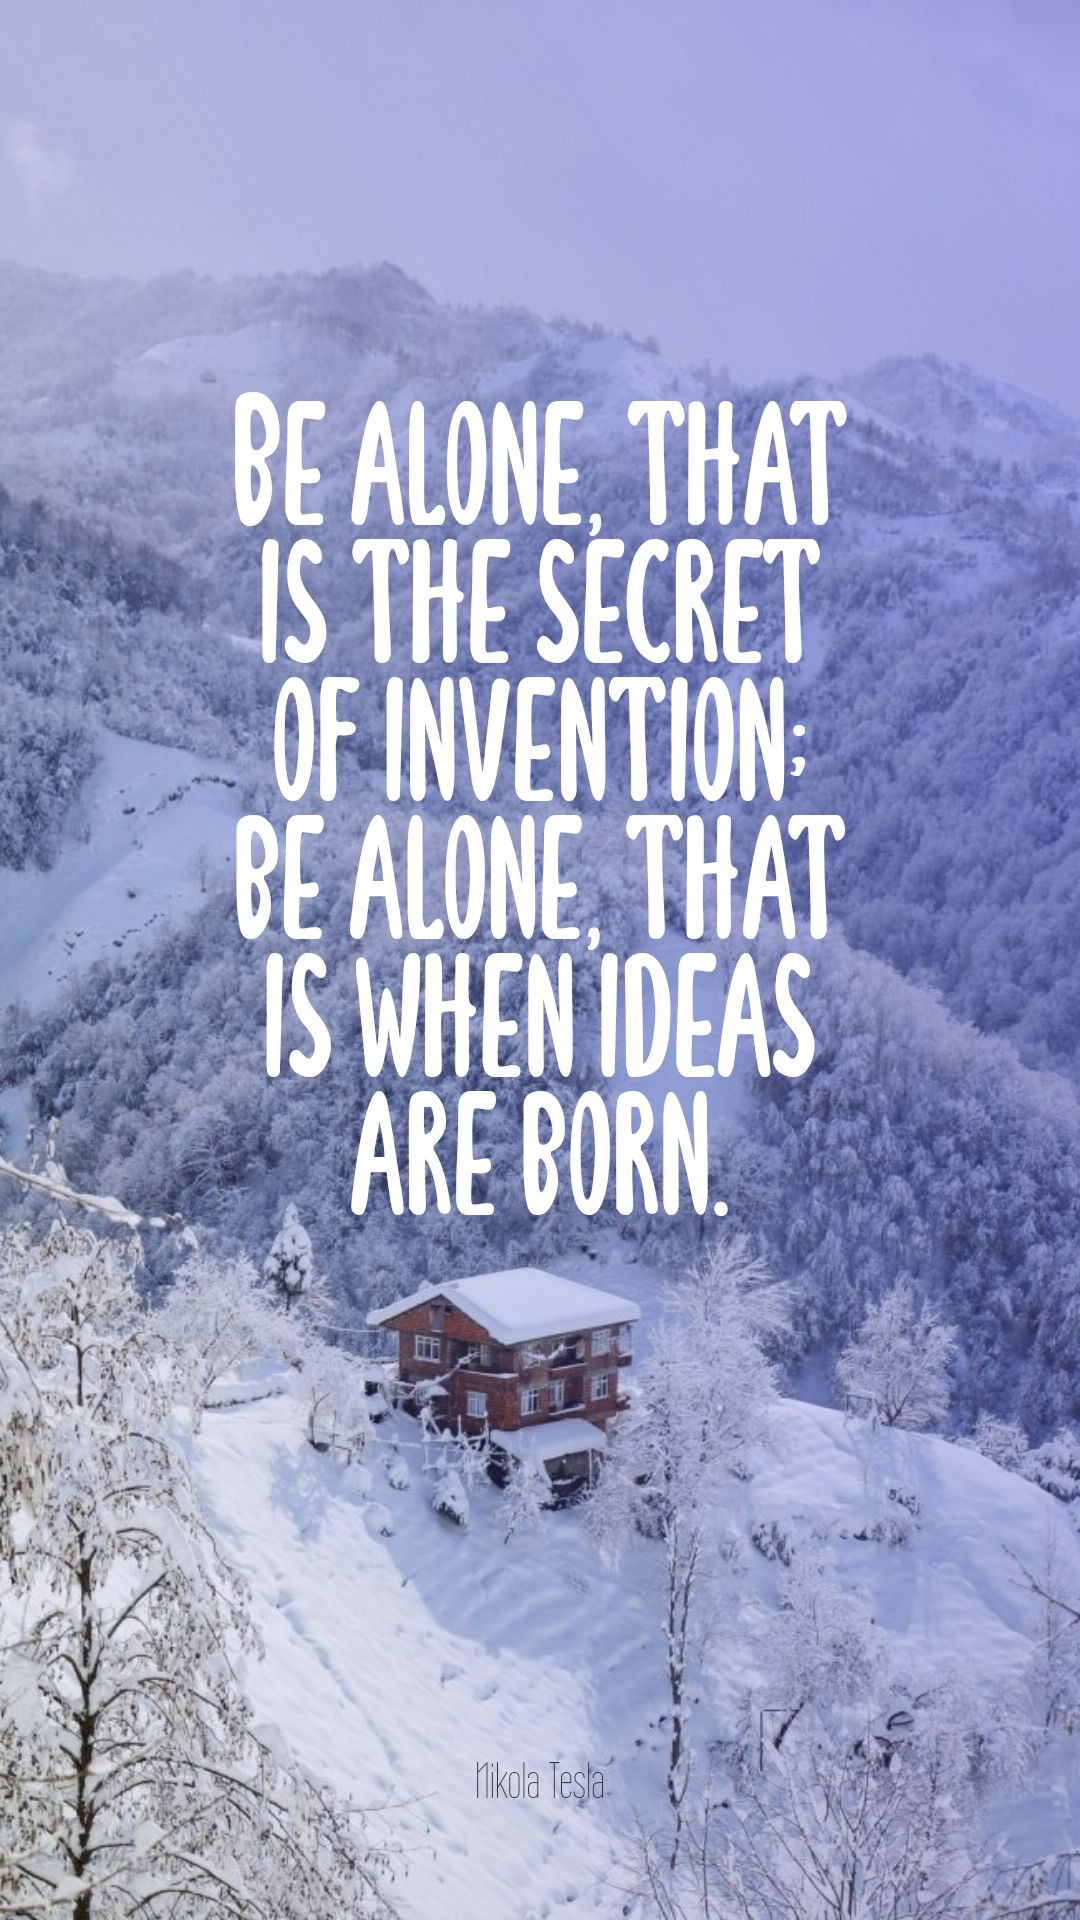 Quotes image of Be alone, that is the secret of invention; be alone, that is when ideas are born.